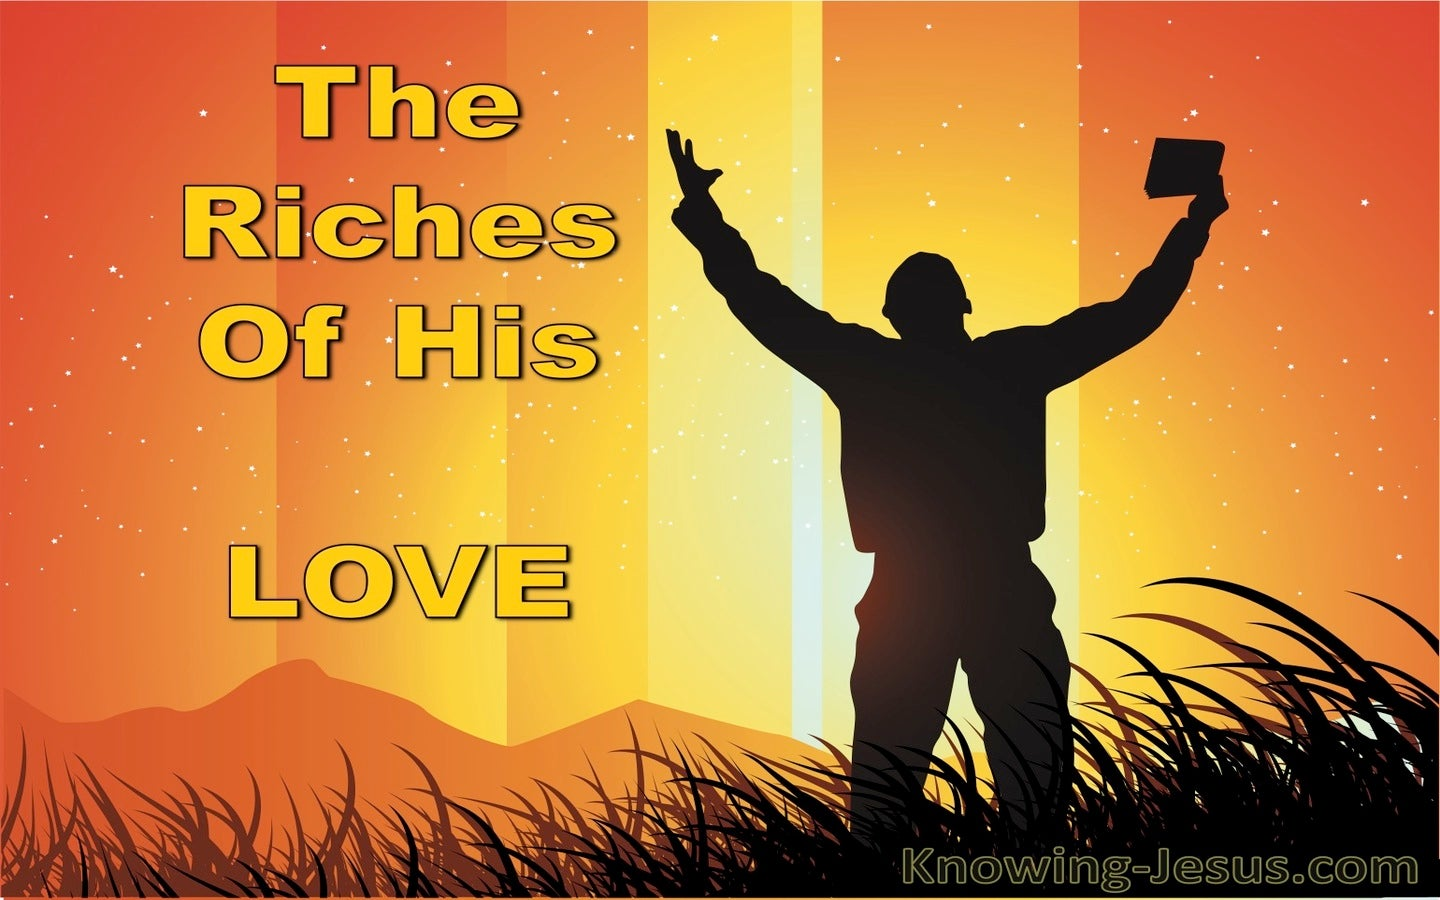 The Riches Of His Love (devotional) (orange)